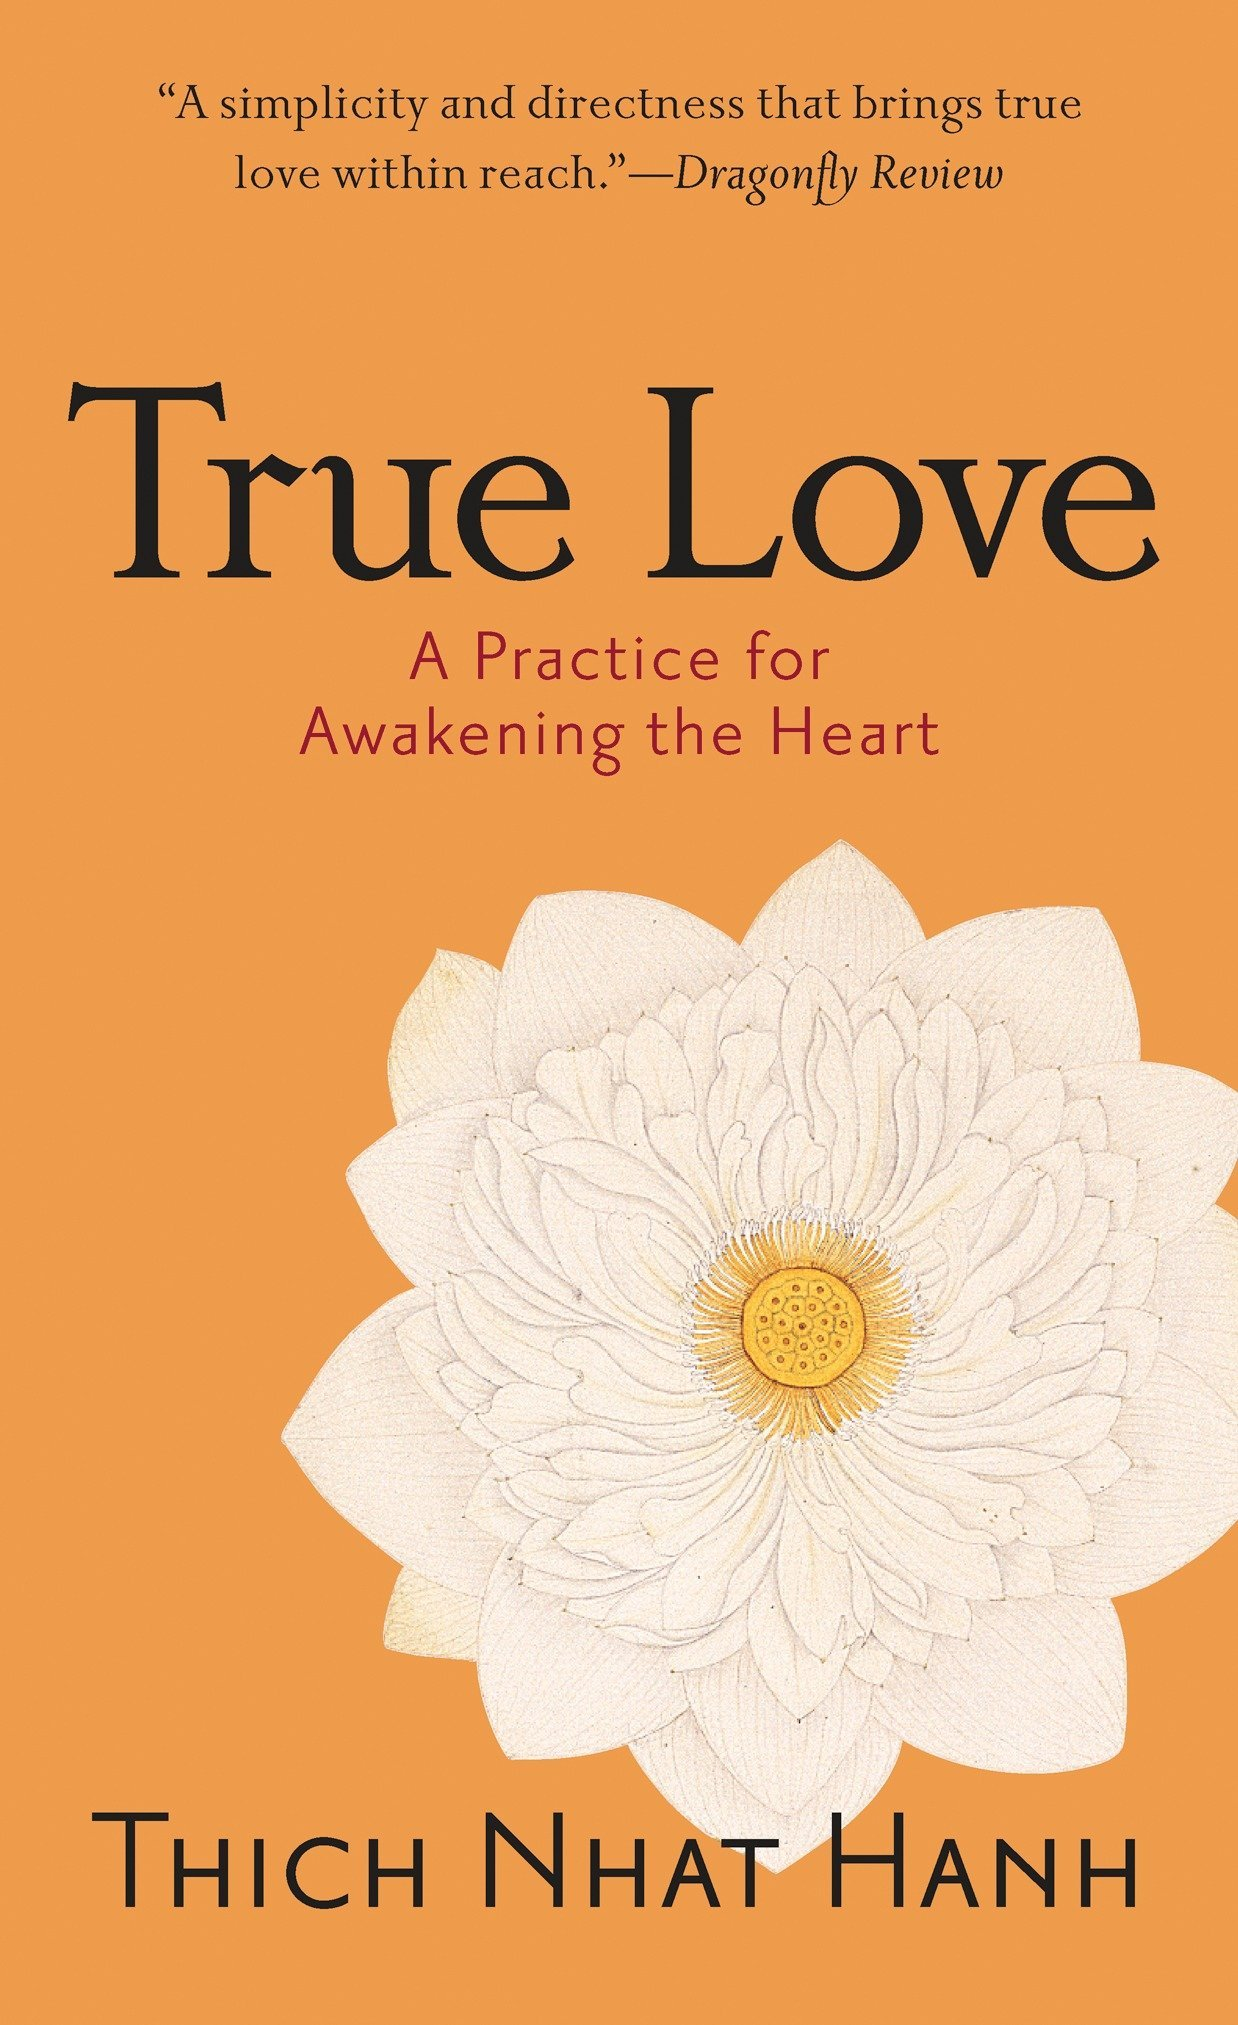 True love a practice for awakening the heart thich nhat hanh true love a practice for awakening the heart thich nhat hanh 9781590304044 amazon books thecheapjerseys